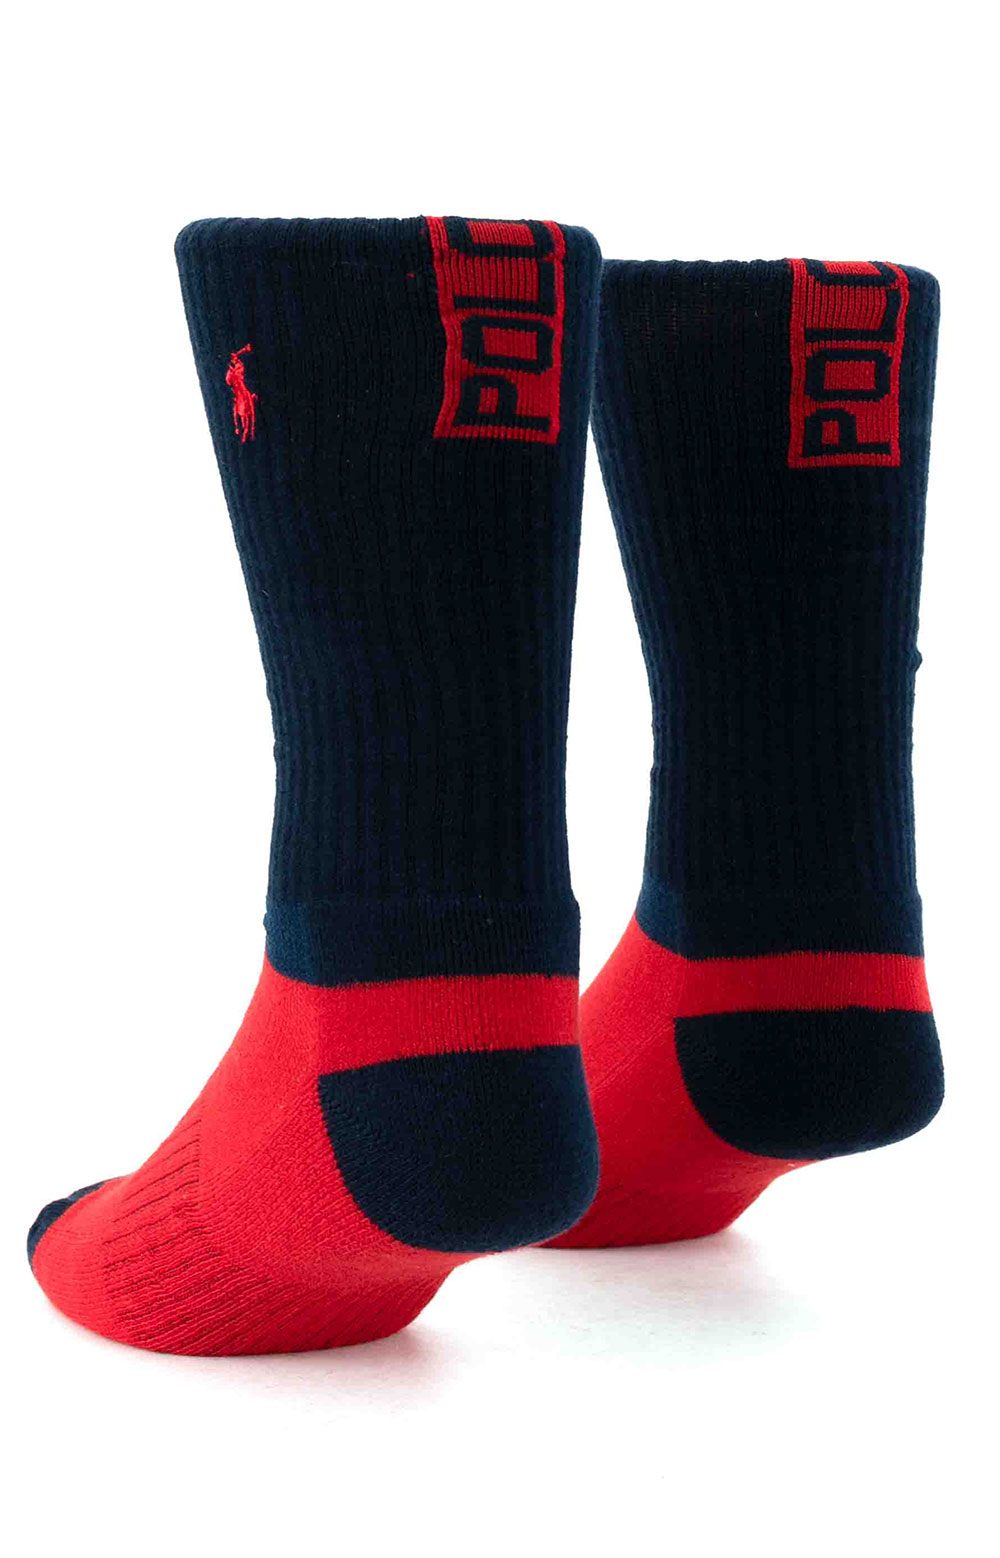 Colorblock Cushioned Crew Socks - 6 Pack 9